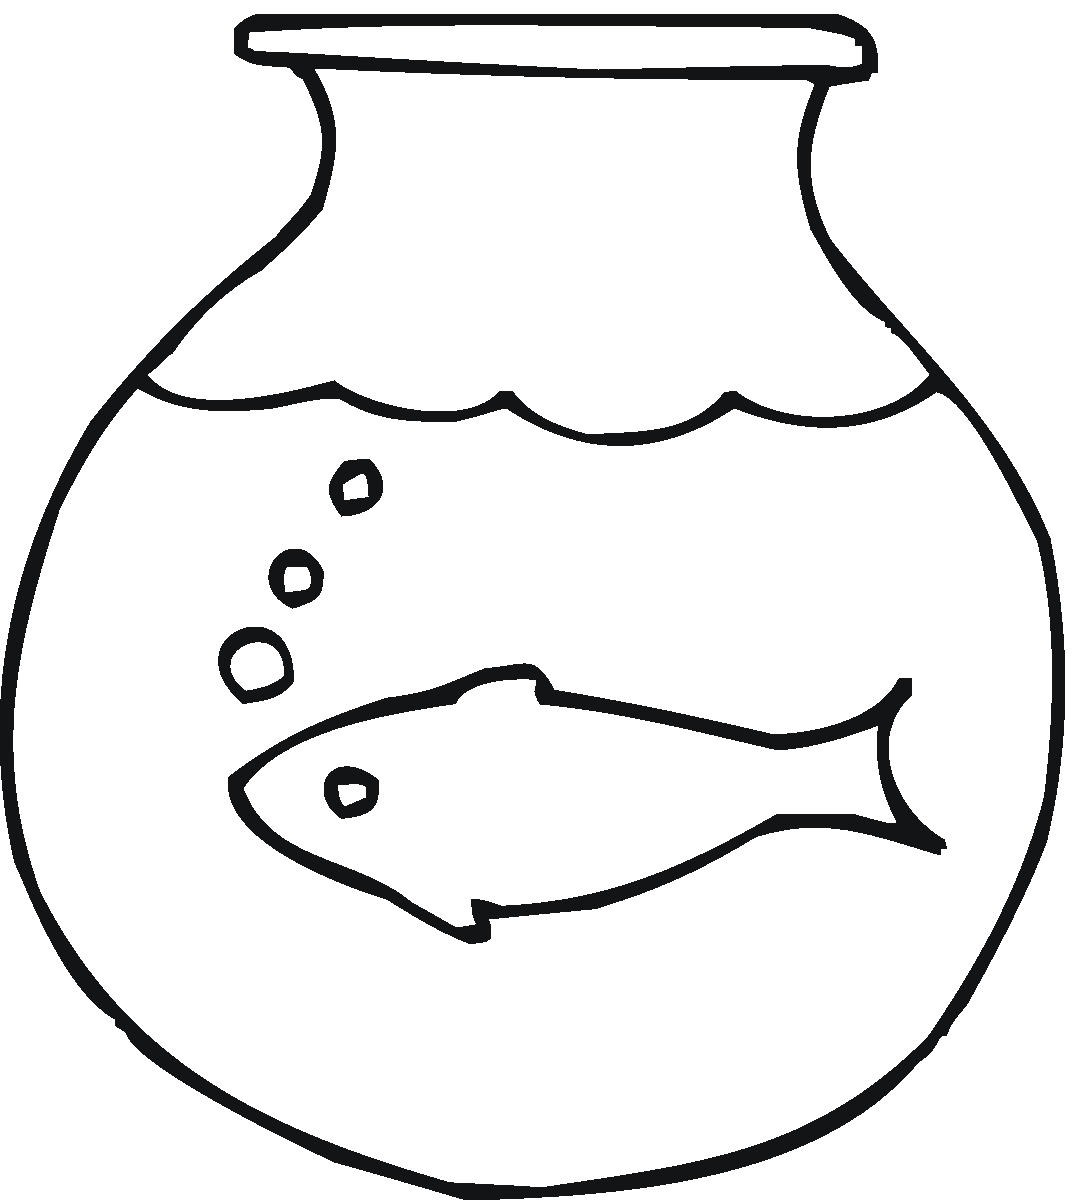 Fish black and white fish bowl clipart black and white free